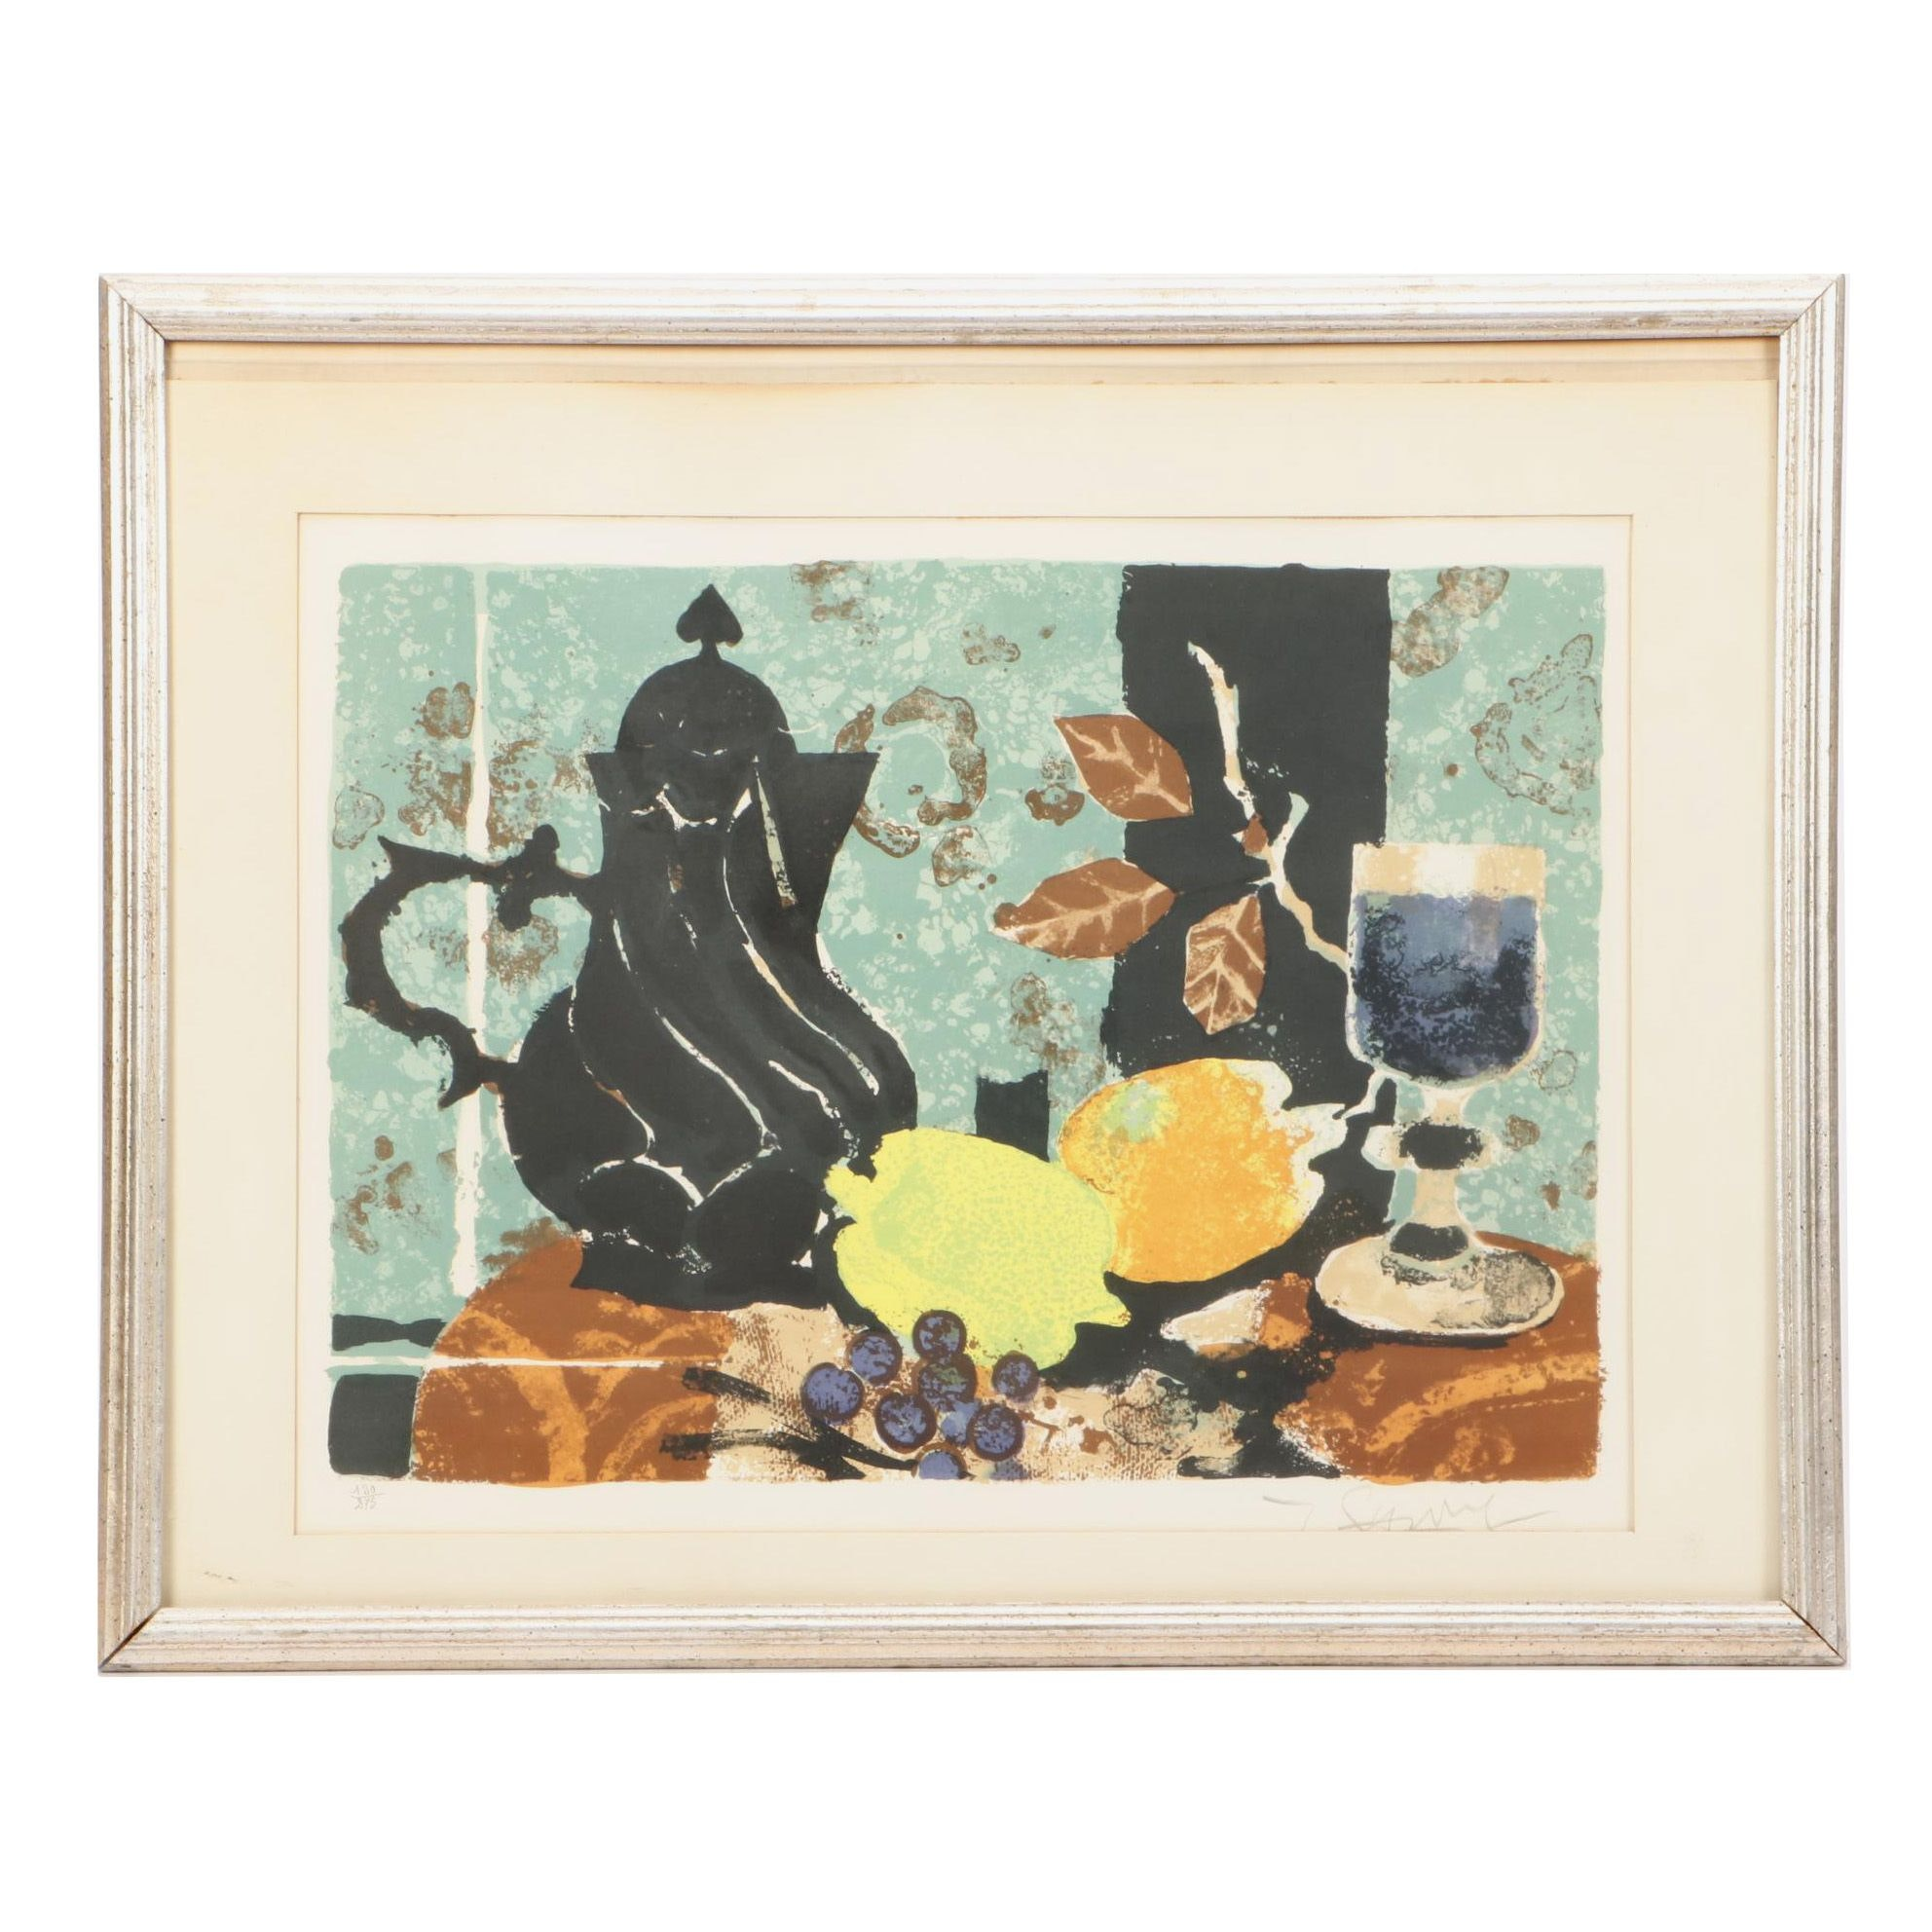 Yves Ganne Mid-Century Limited Edition Color Lithograph